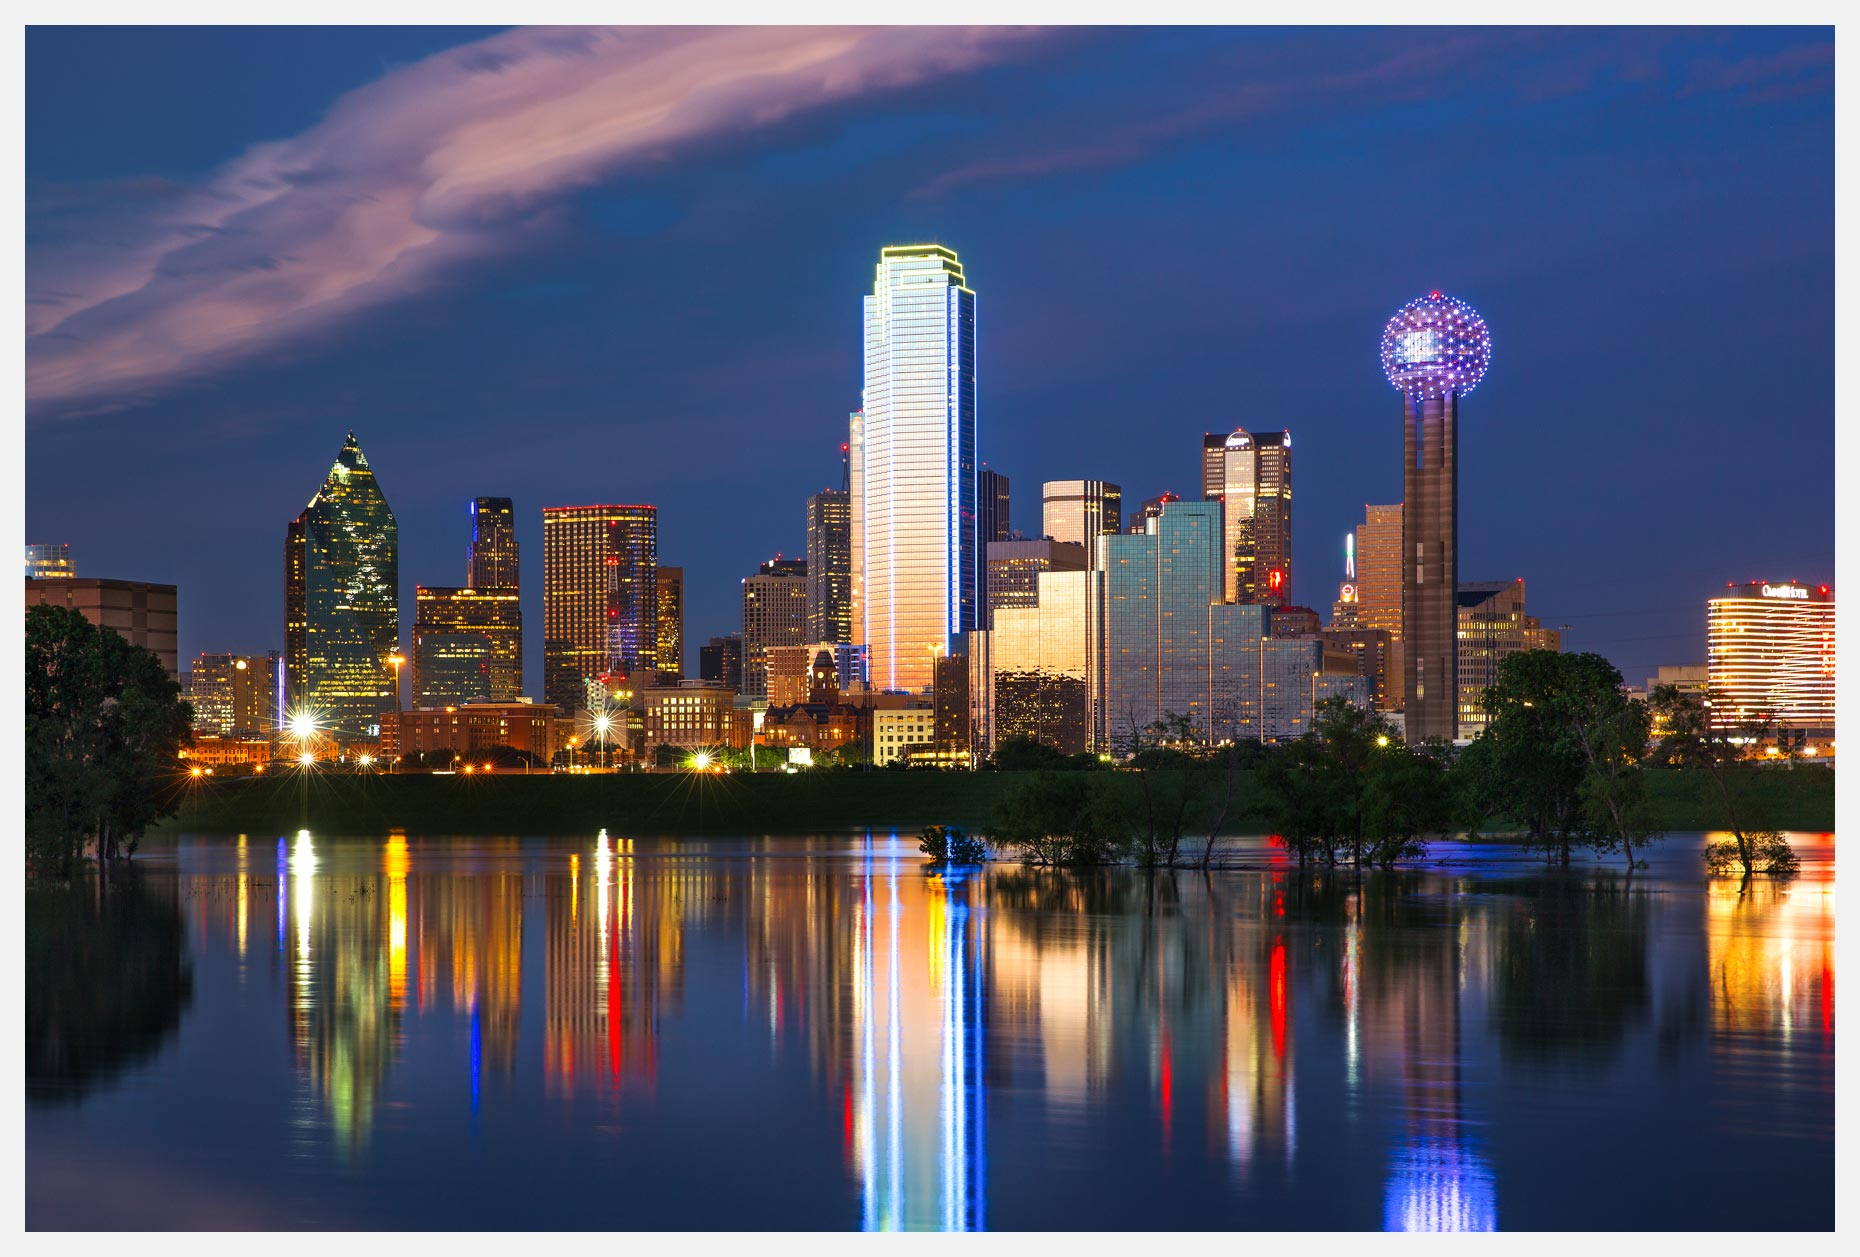 Dallas Skyline at Night with Reflection in River